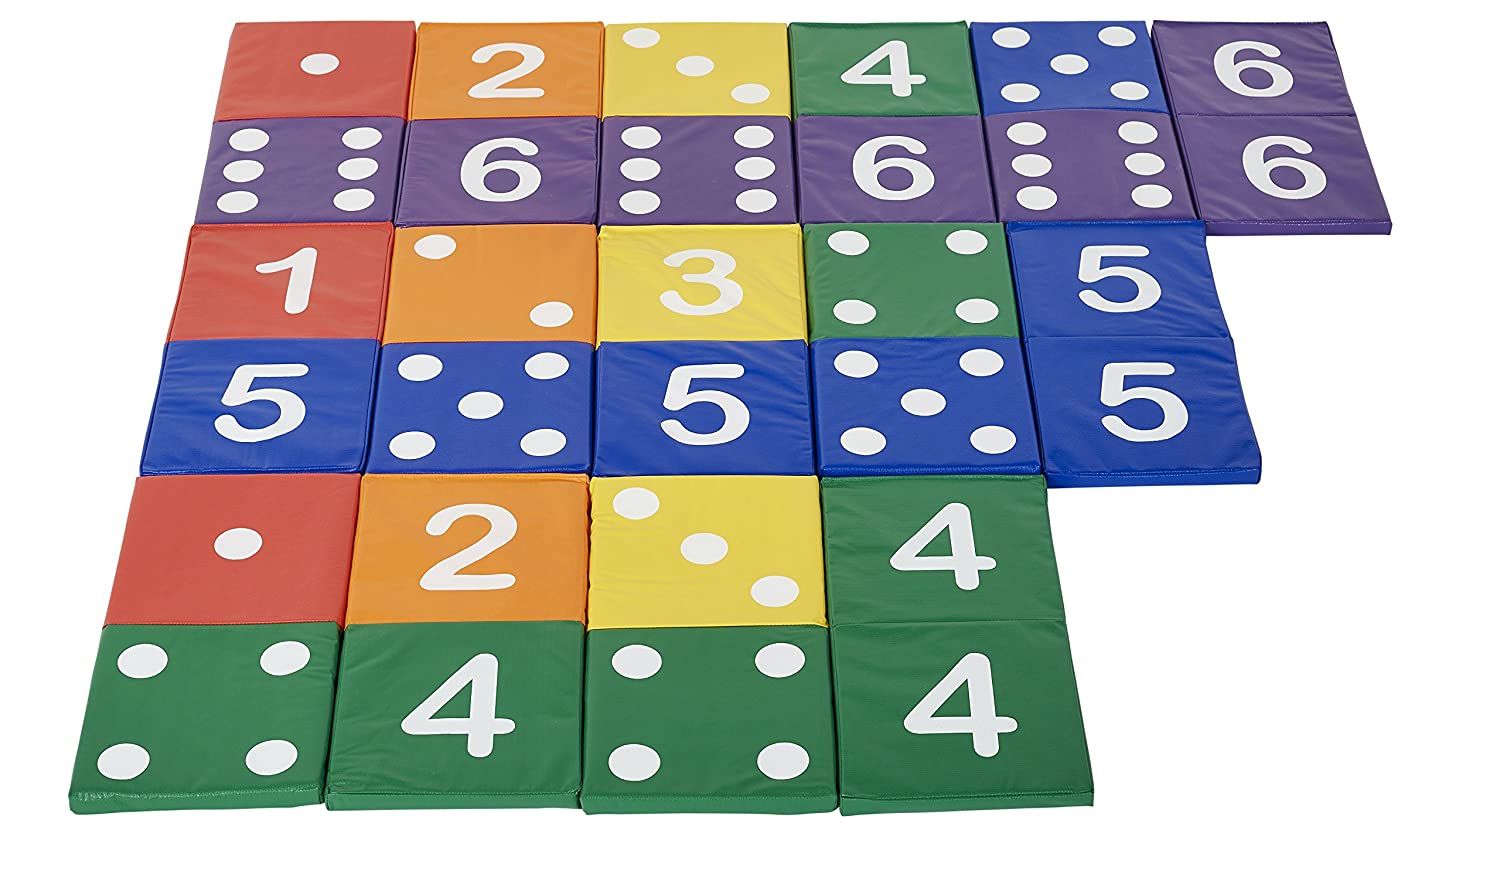 Pack of 28 Fun for Kids and Adults ECR4Kids ELR-12691 SoftZone Giant Match and Learn Reversible Foam Dominoes Game Set Primary Colors Assorted